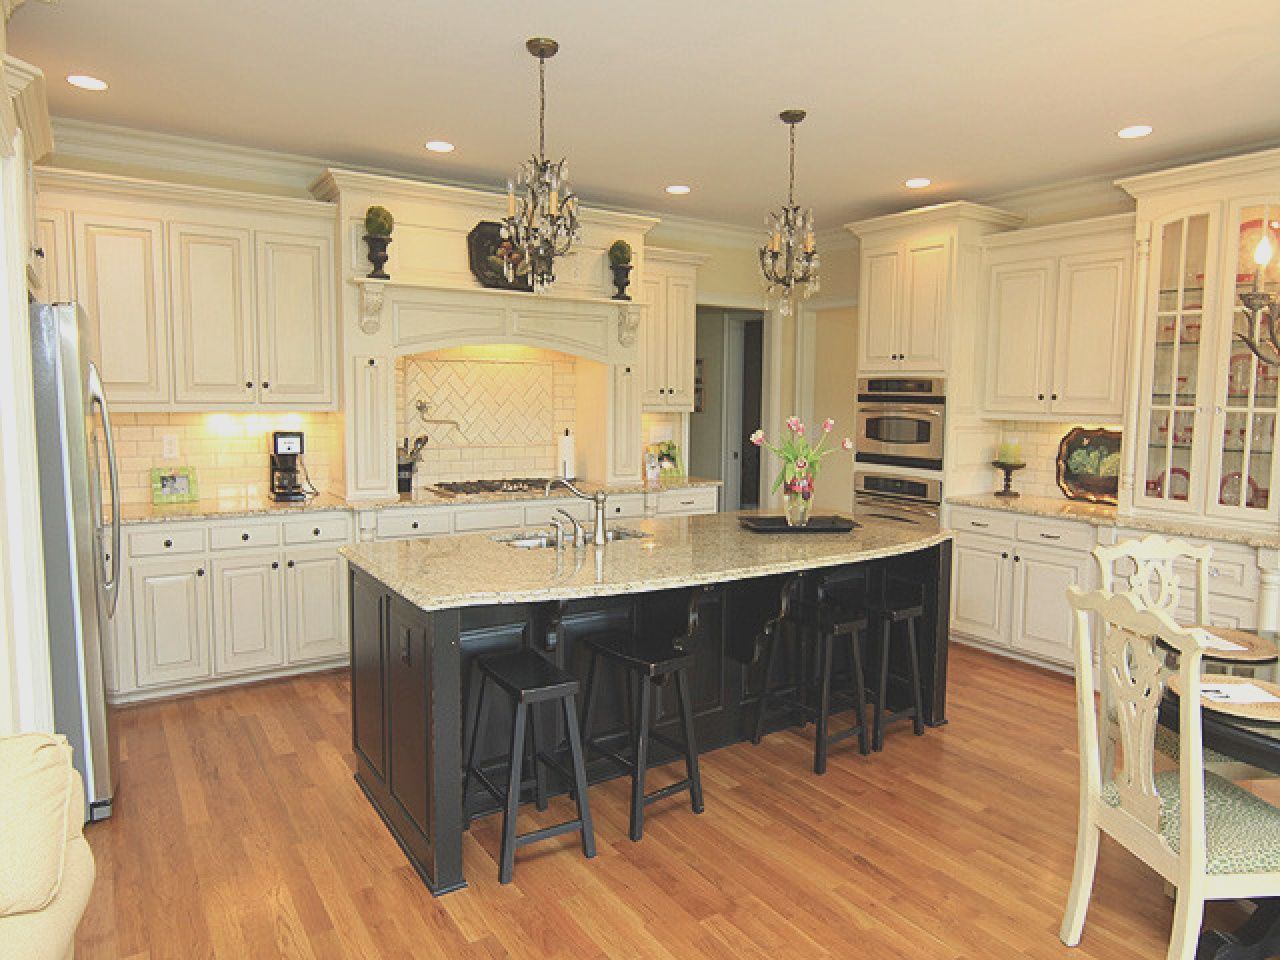 Image Result For Cream Kitchens With Black Island Images French Country Kitchen Cabinets Country Kitchen Cabinets Country Kitchen Designs